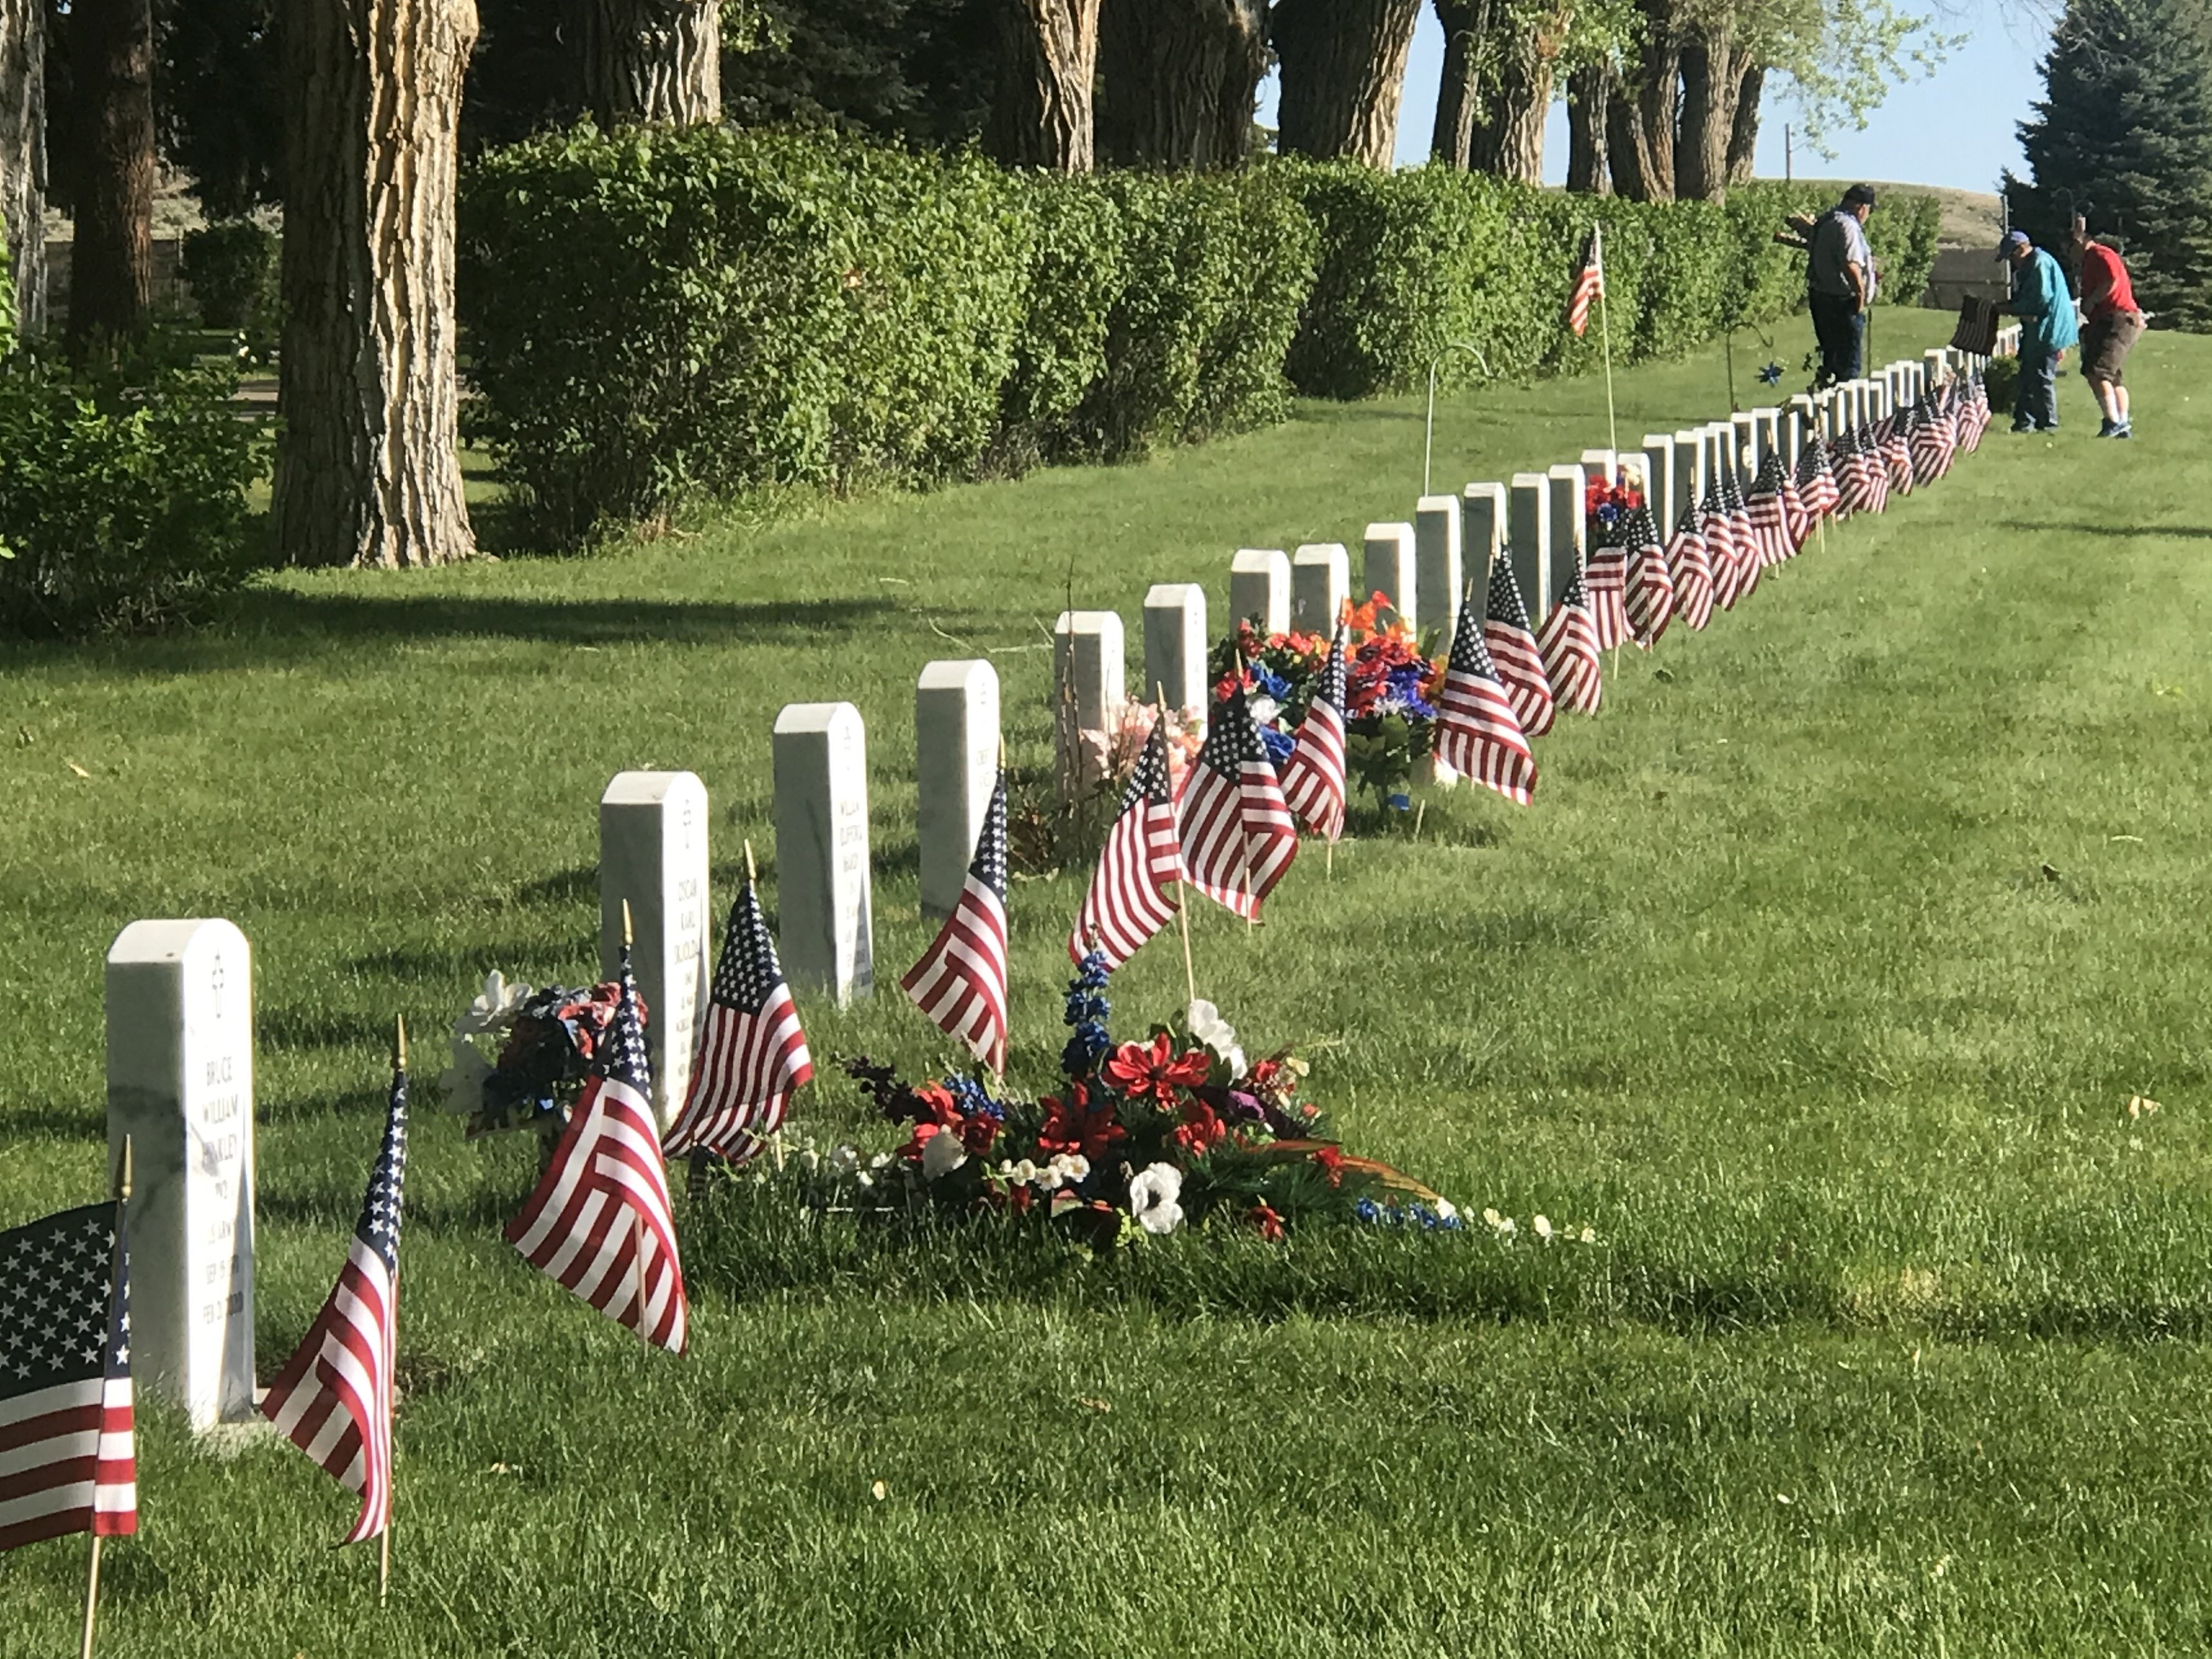 Volunteers placed flags on Graves of Veterans today